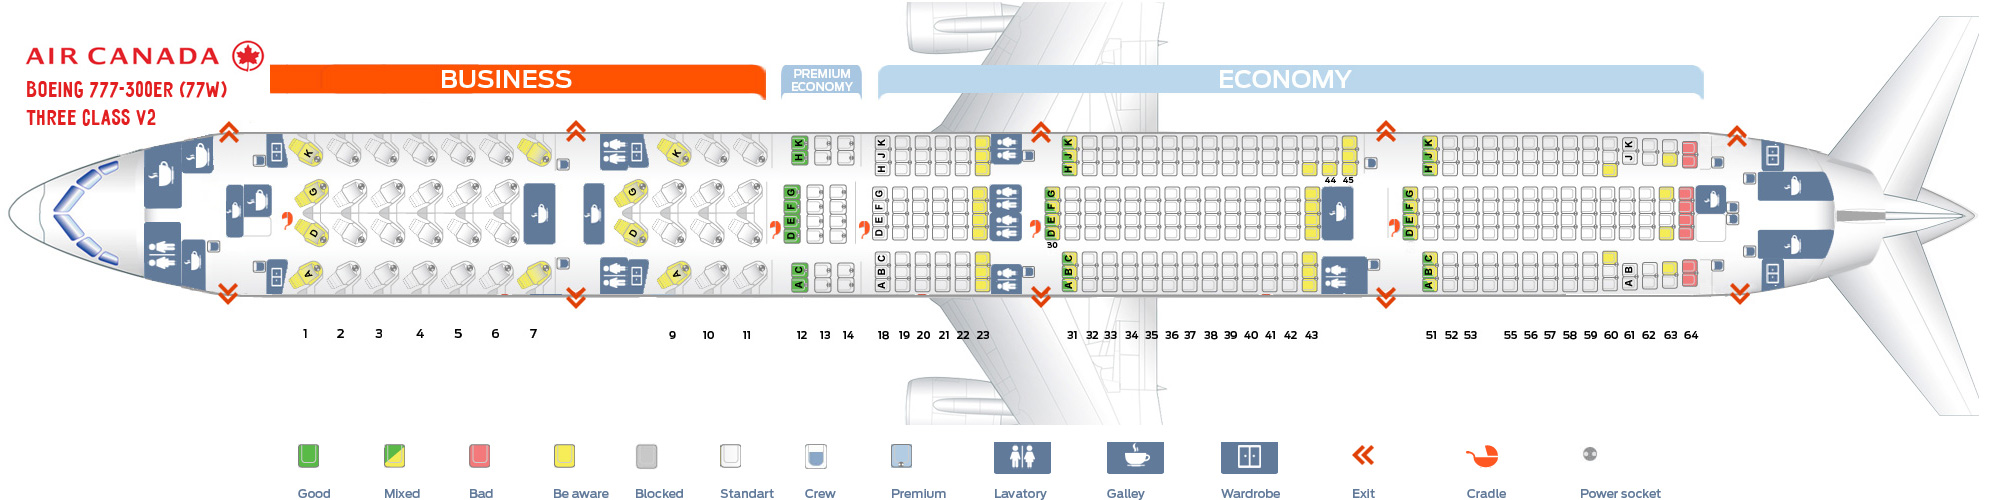 Seat Map and Seating Chart Boeing 777 300ER Air Canada 77W Three Class V1